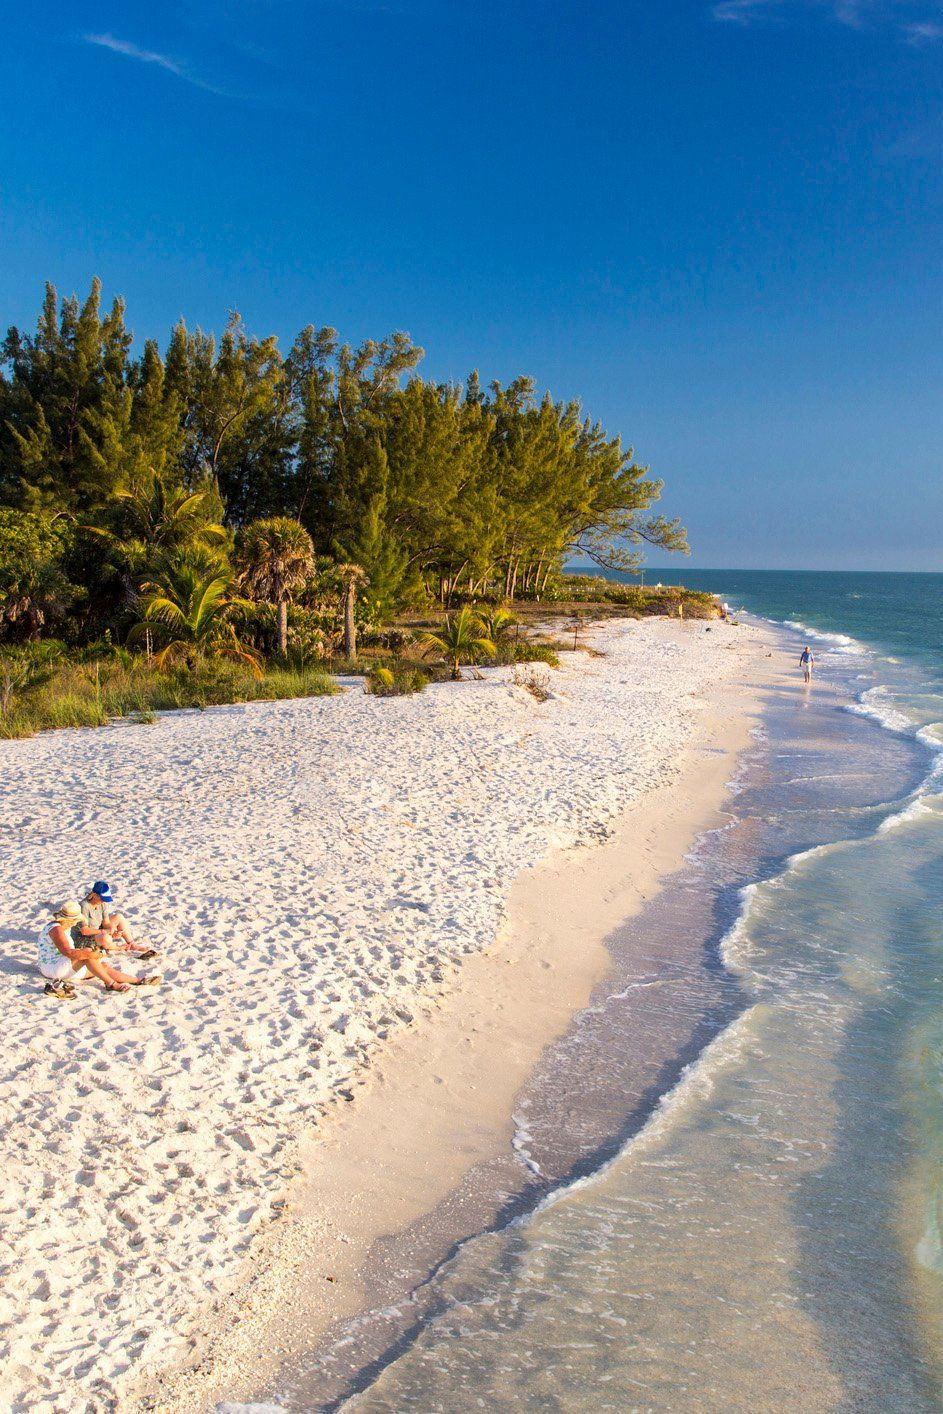 You don't have to splurge on flights to the Caribbean to find turquoise water and ivory sand beaches. #travel #Florida